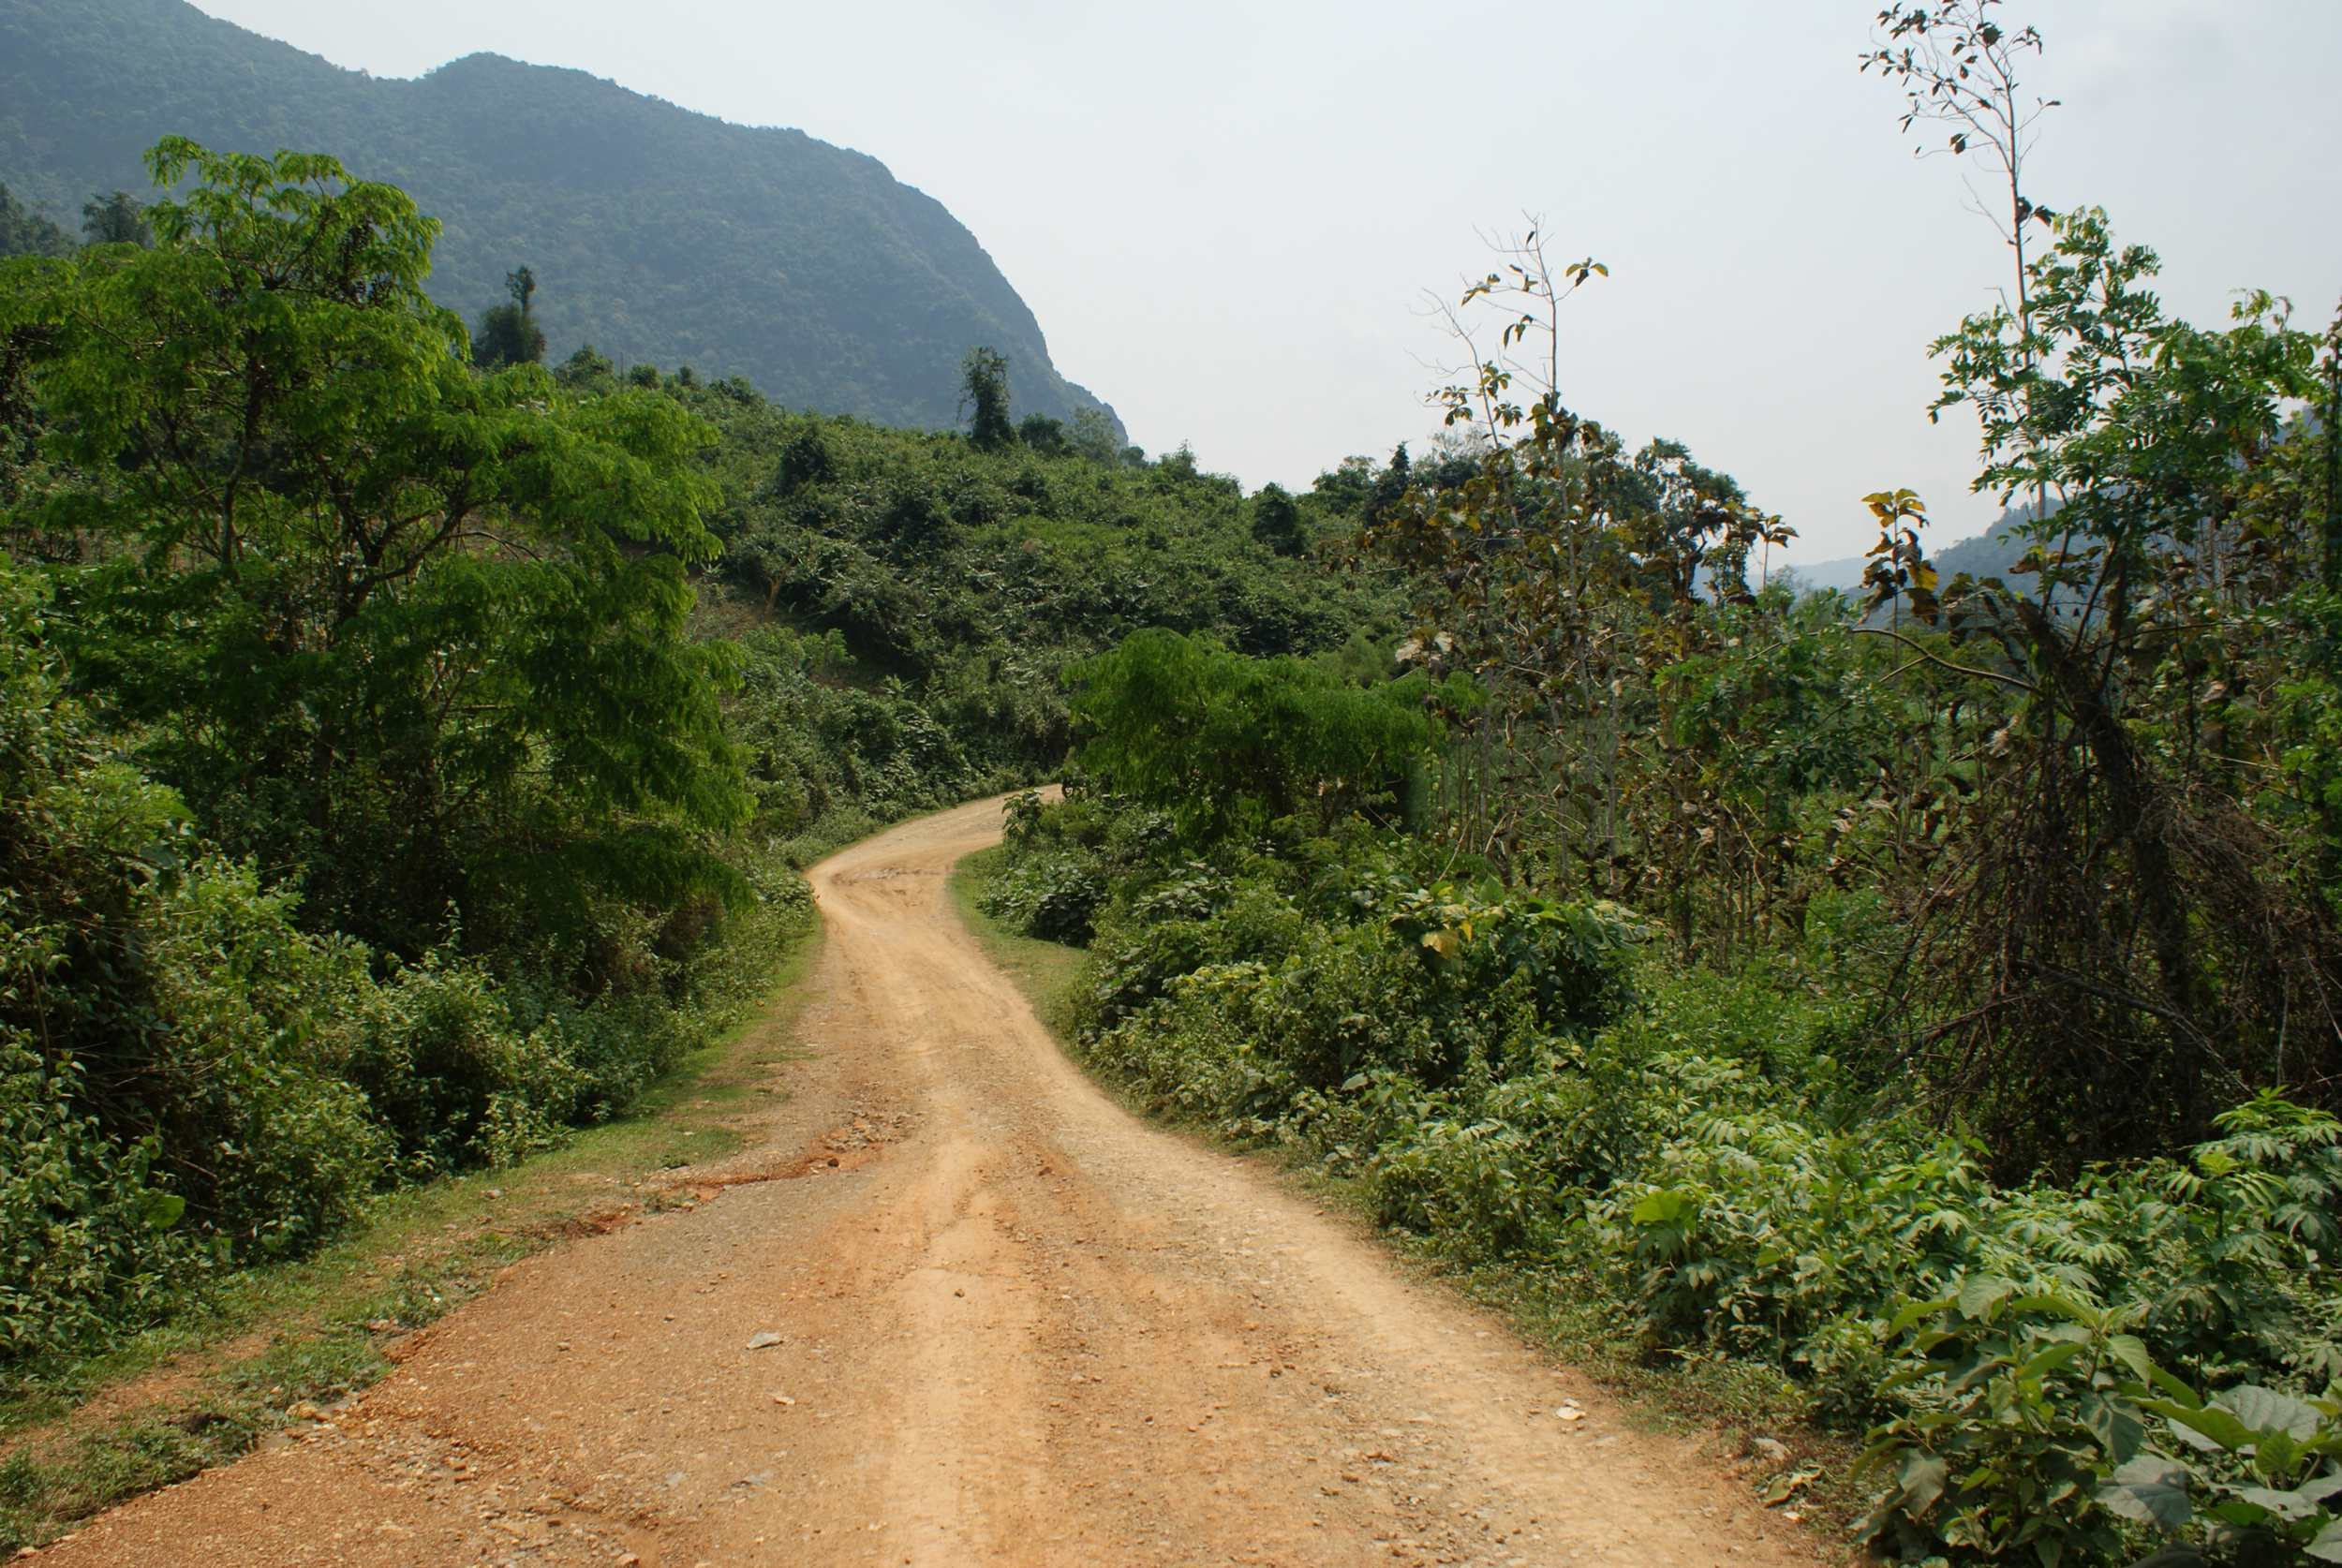 The road ahead, the only road to the next village